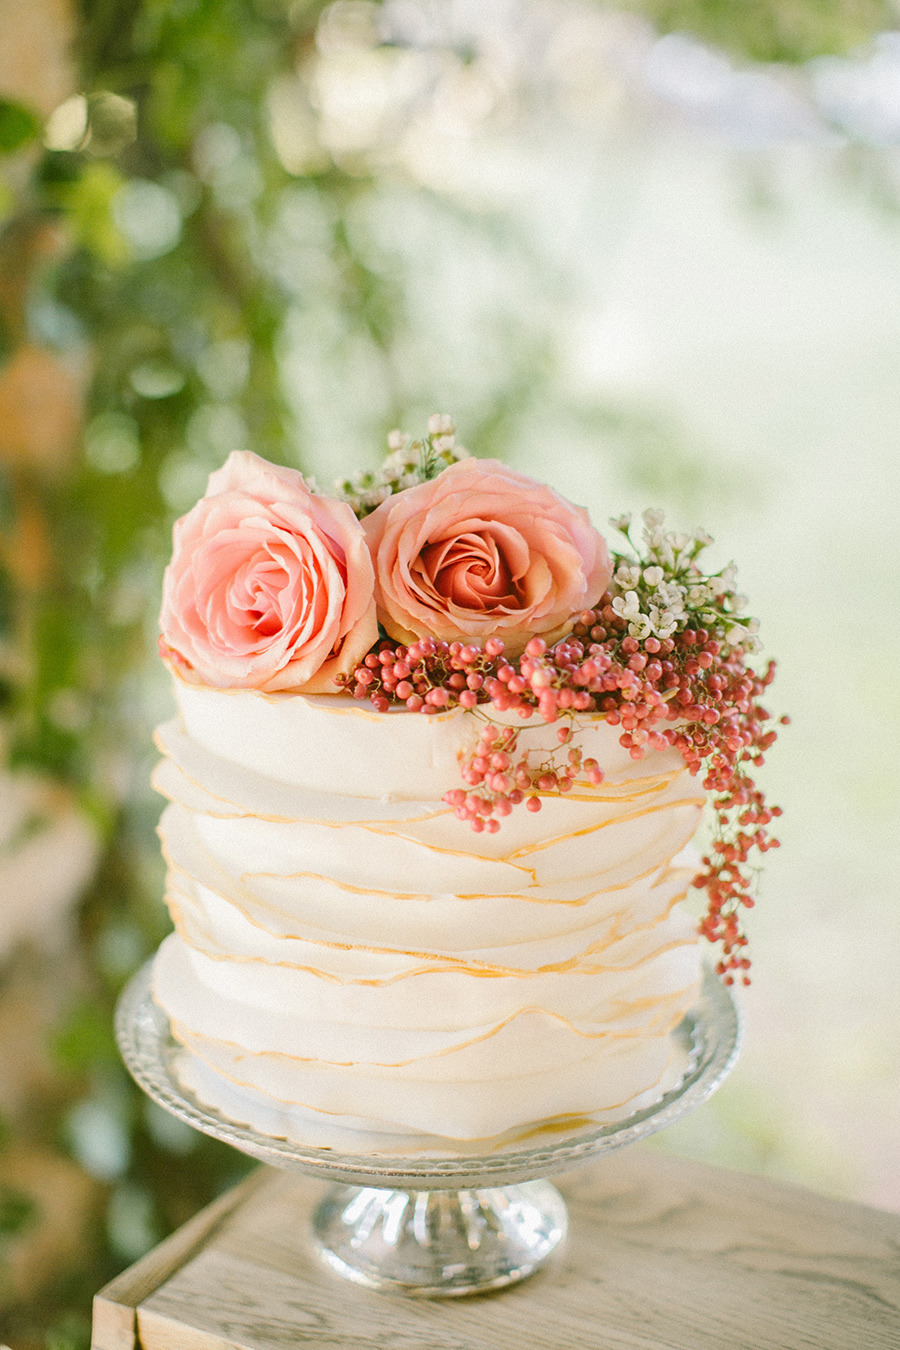 winte wedding cake - Boho Chic Wedding Inspiration Shoot from Anna Roussos Photography - annaroussos.com | Read more : https://www.fabmood.com/boho-chic-wedding-inspiration-shoot-anna-roussos-photography